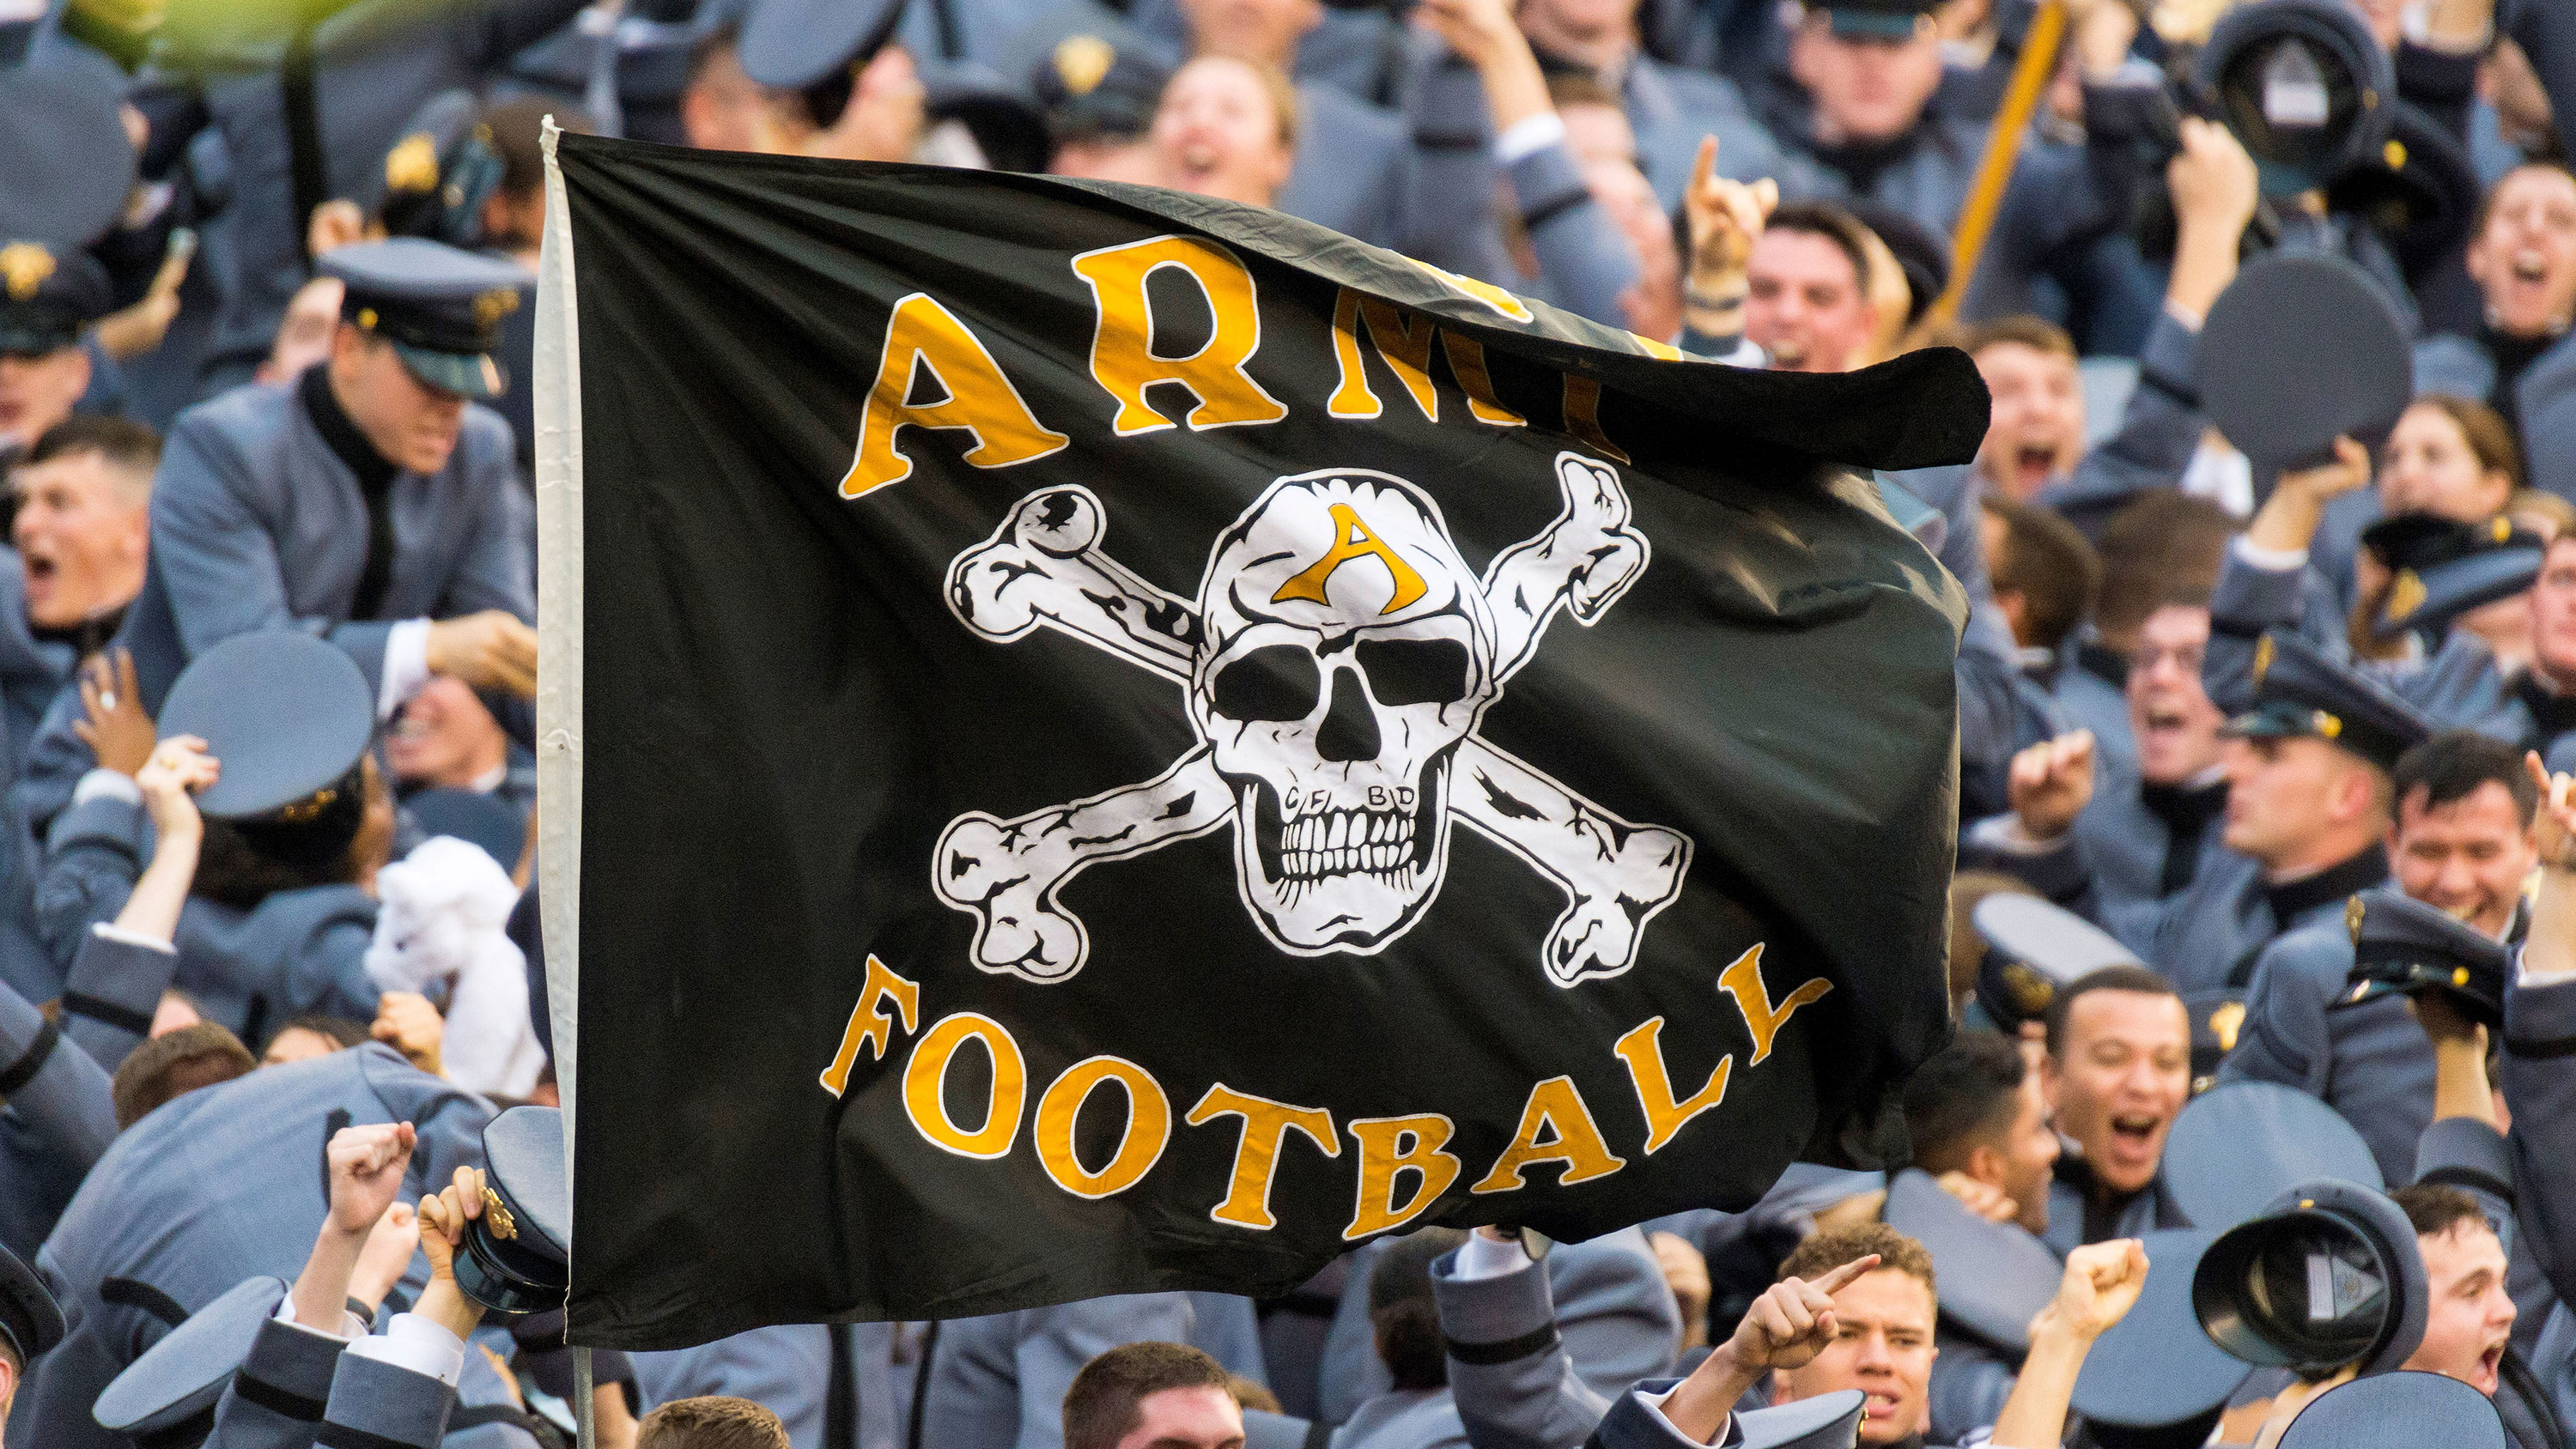 Motto linked to hate group removed from West Point football flag